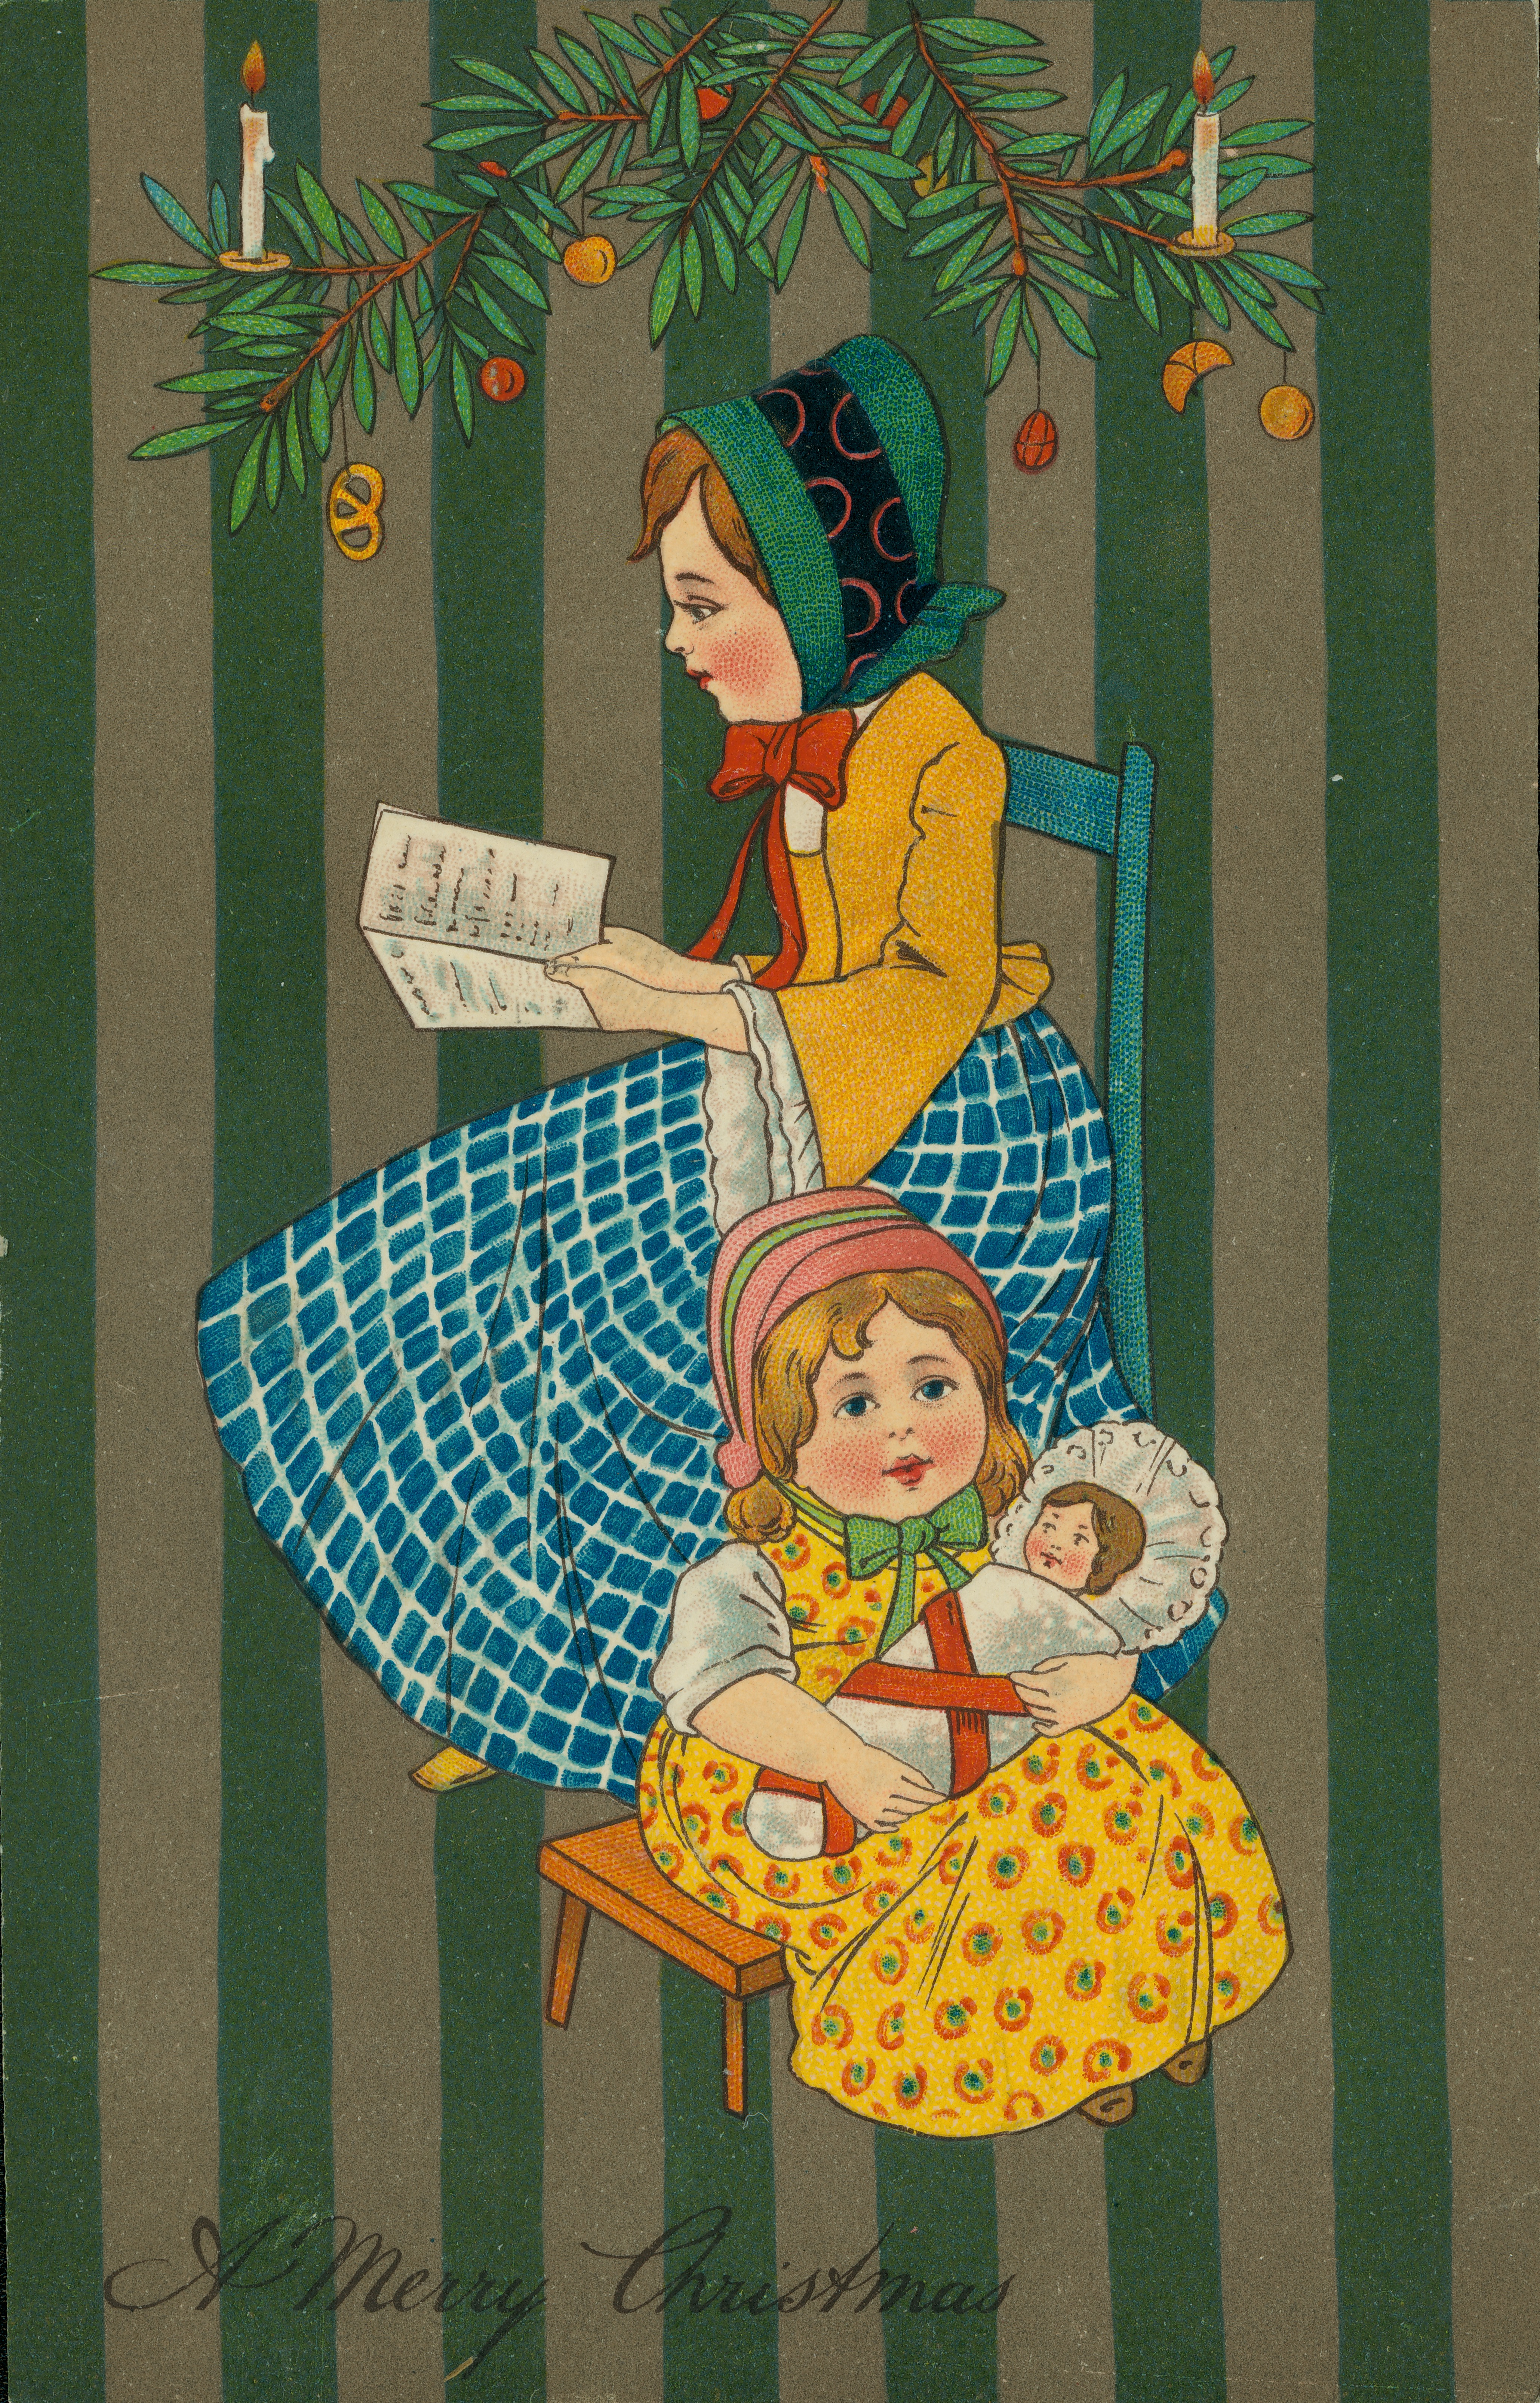 """Christmas postcard with two seated girls; older one in chair reading book, toddler on stool holding swaddled baby doll, decorated evergreen branches at top, with """"A Merry Christmas"""" at bottom, striped background"""